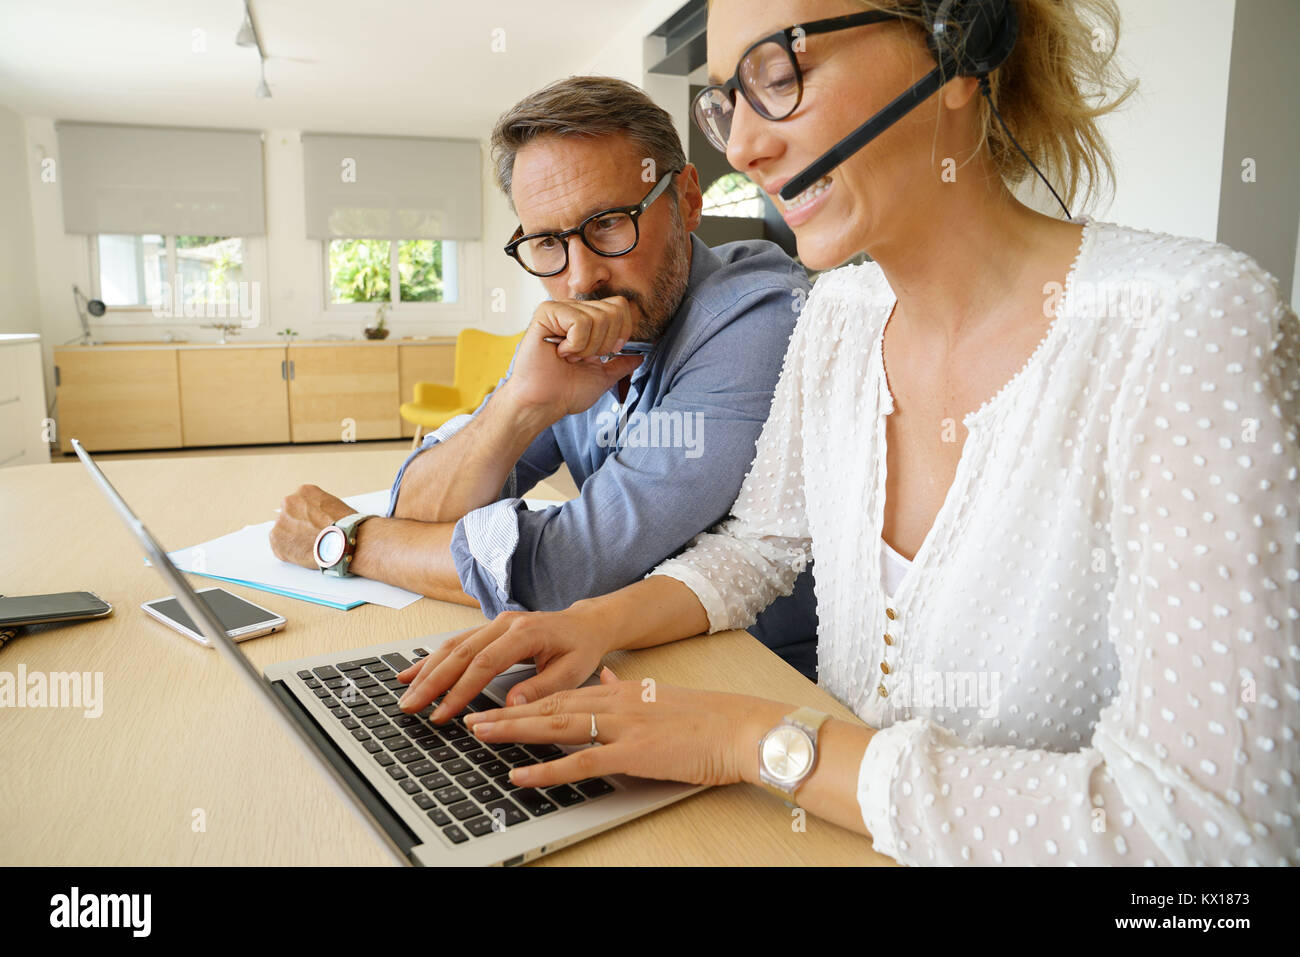 Startup people in conference call - Stock Image